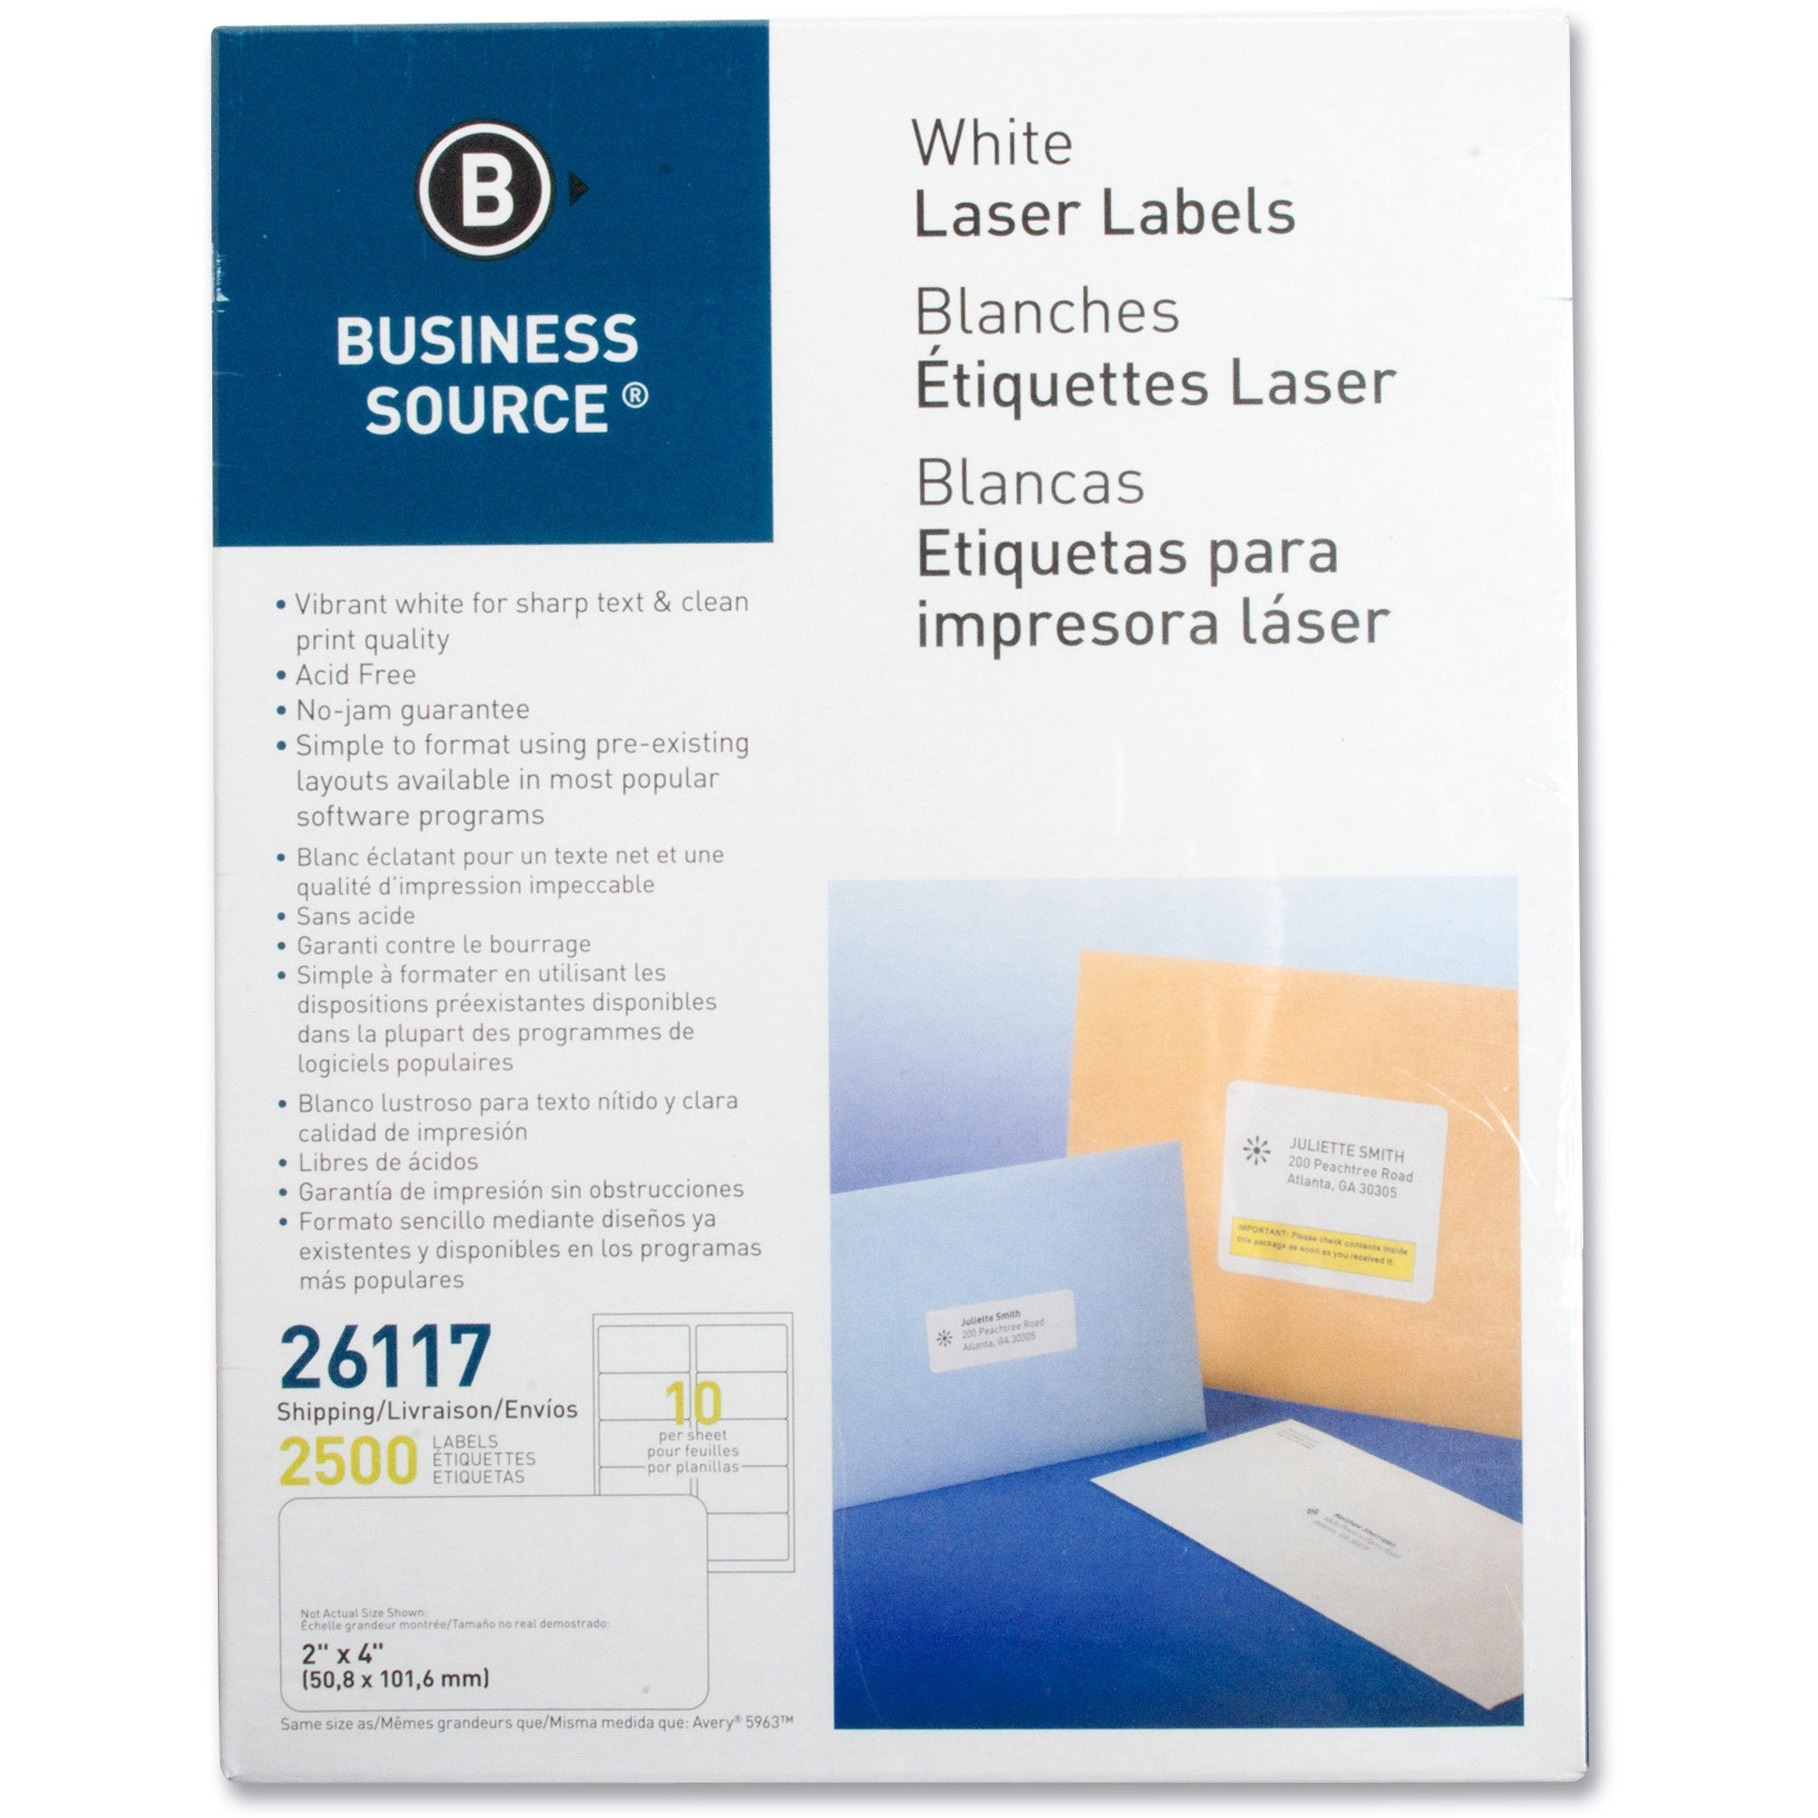 Business Source, BSN26117, Bright White Premium-quality Shipping Labels, 2500 / Pack, White